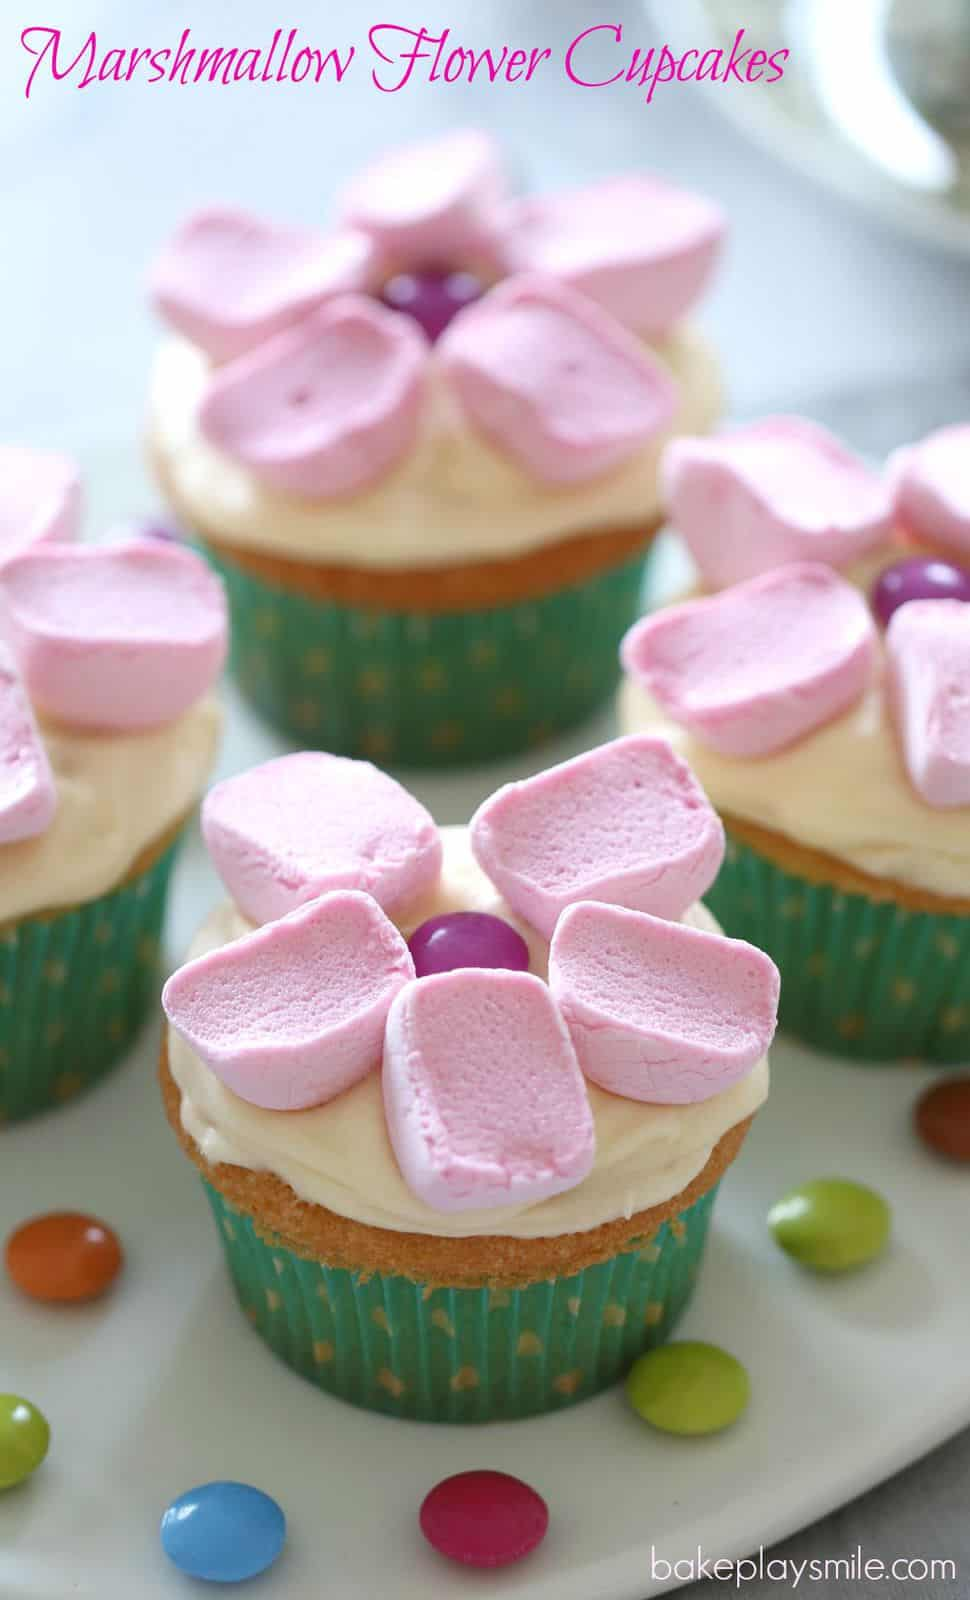 Cute Marshmallow Flower Cupcakes Bake Play Smile